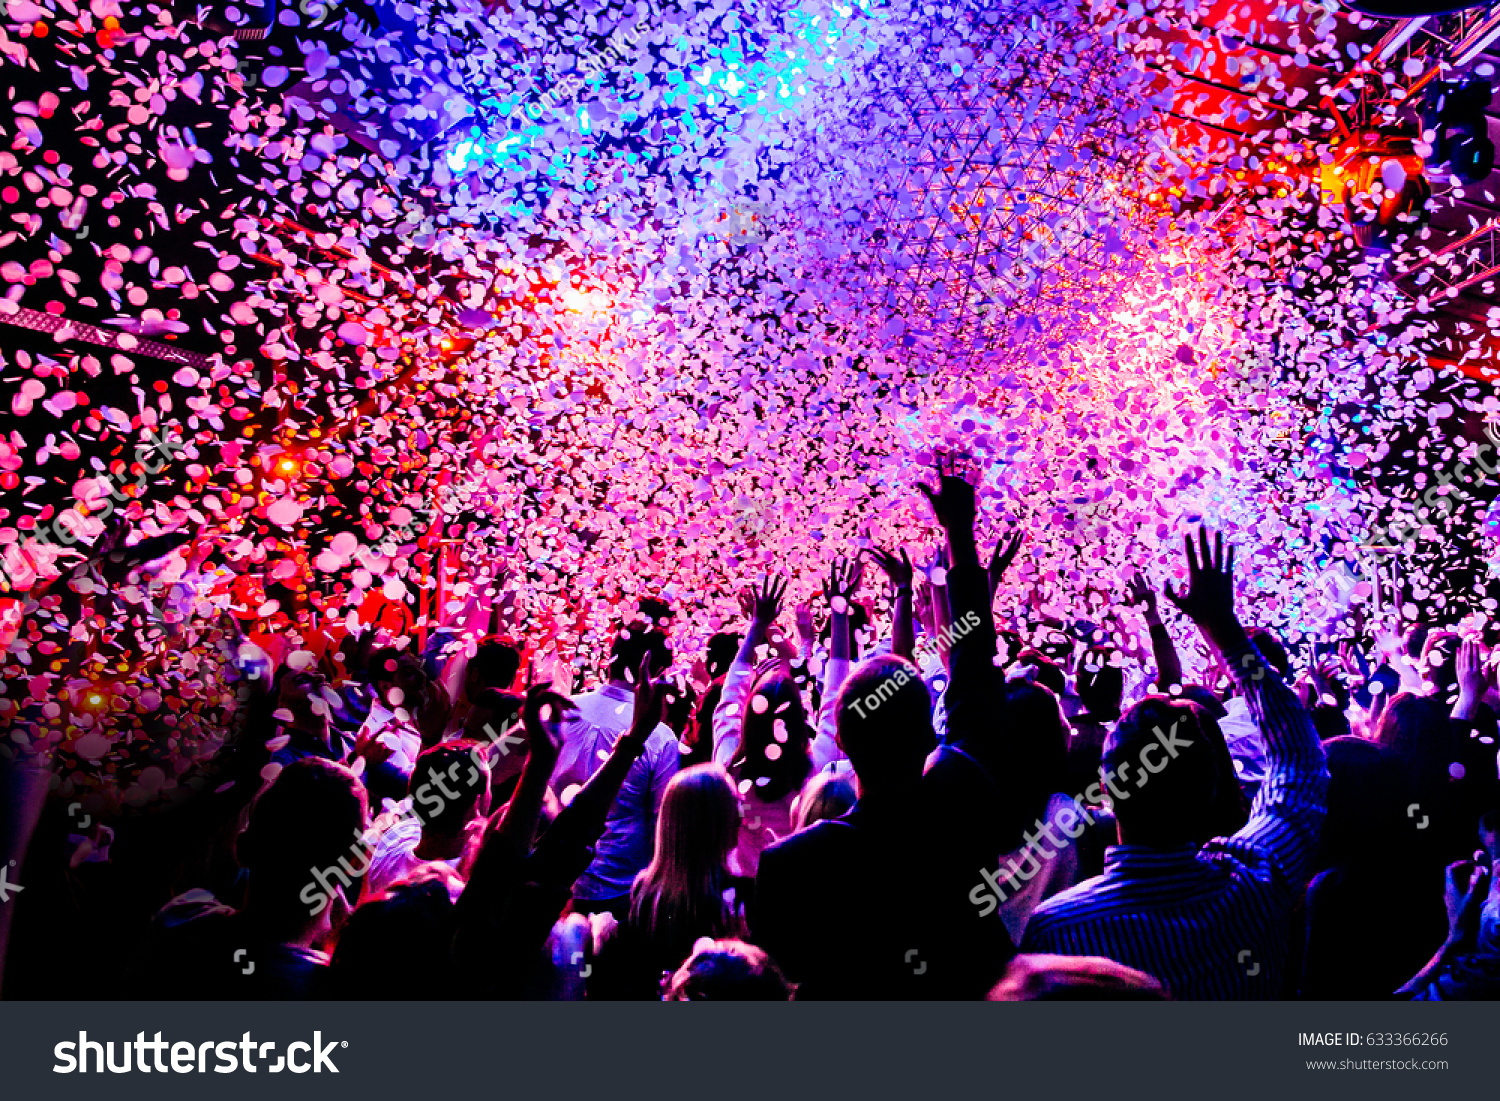 silhouettes of concert crowd in front of bright stage lights and confetti #633366266